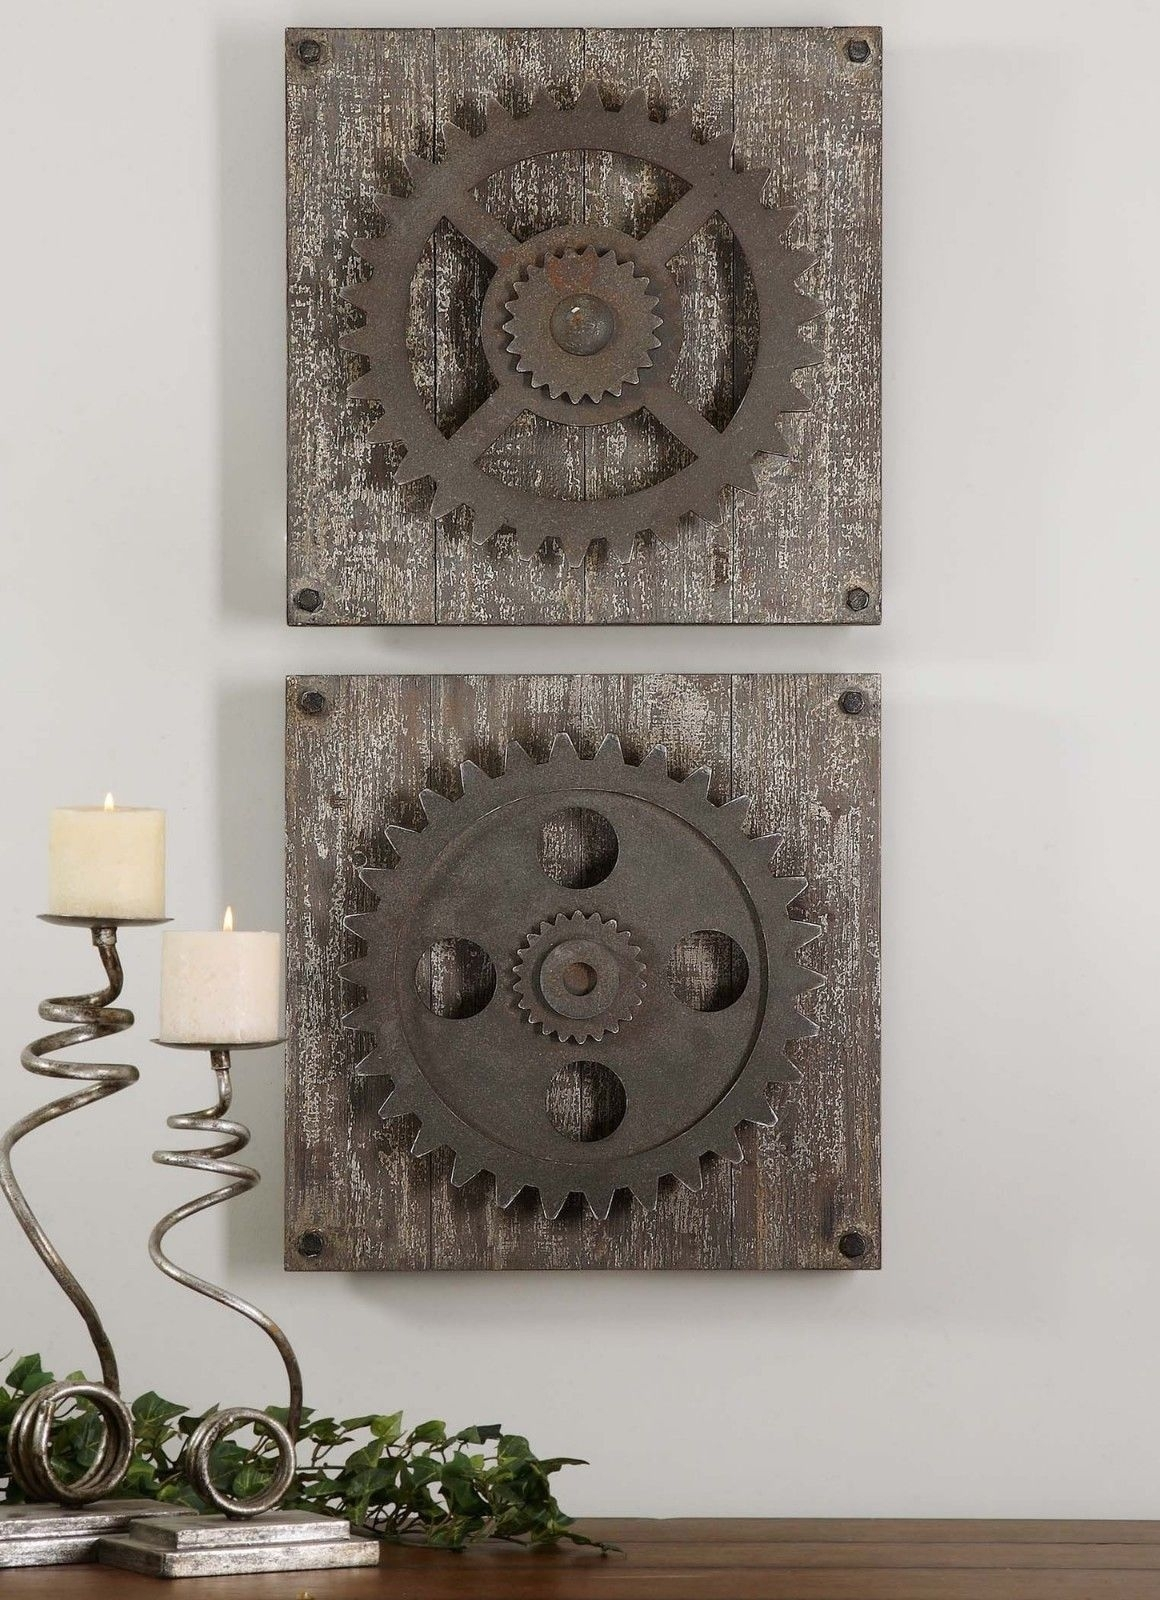 Urban Industrial Loft Steampunk Decor Rusty Gears Cogs 3D Wall Art for Industrial Wall Art (Image 16 of 20)